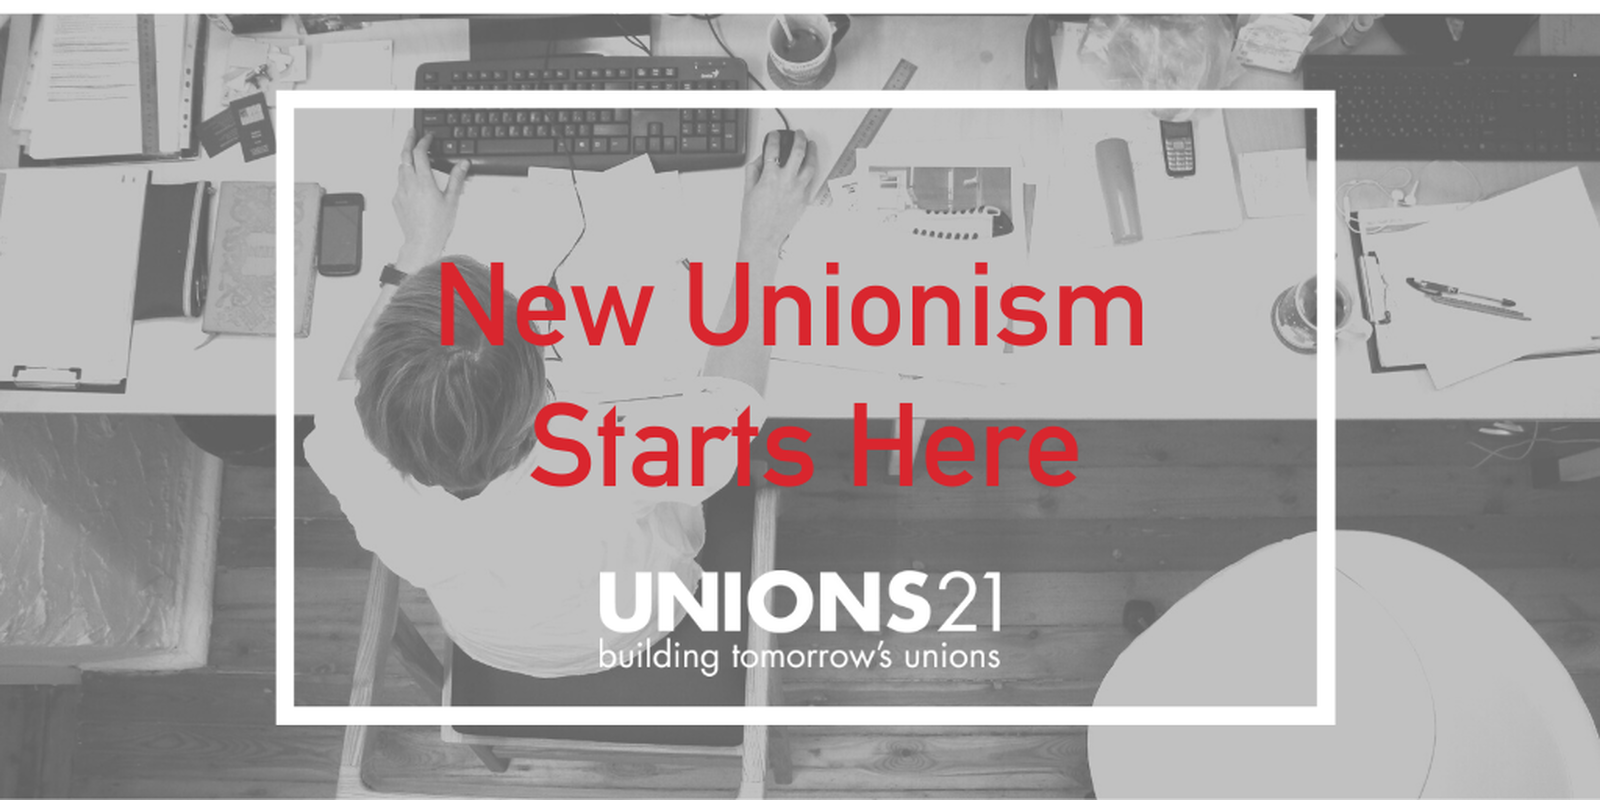 The United Workers Union: New unionism starts here